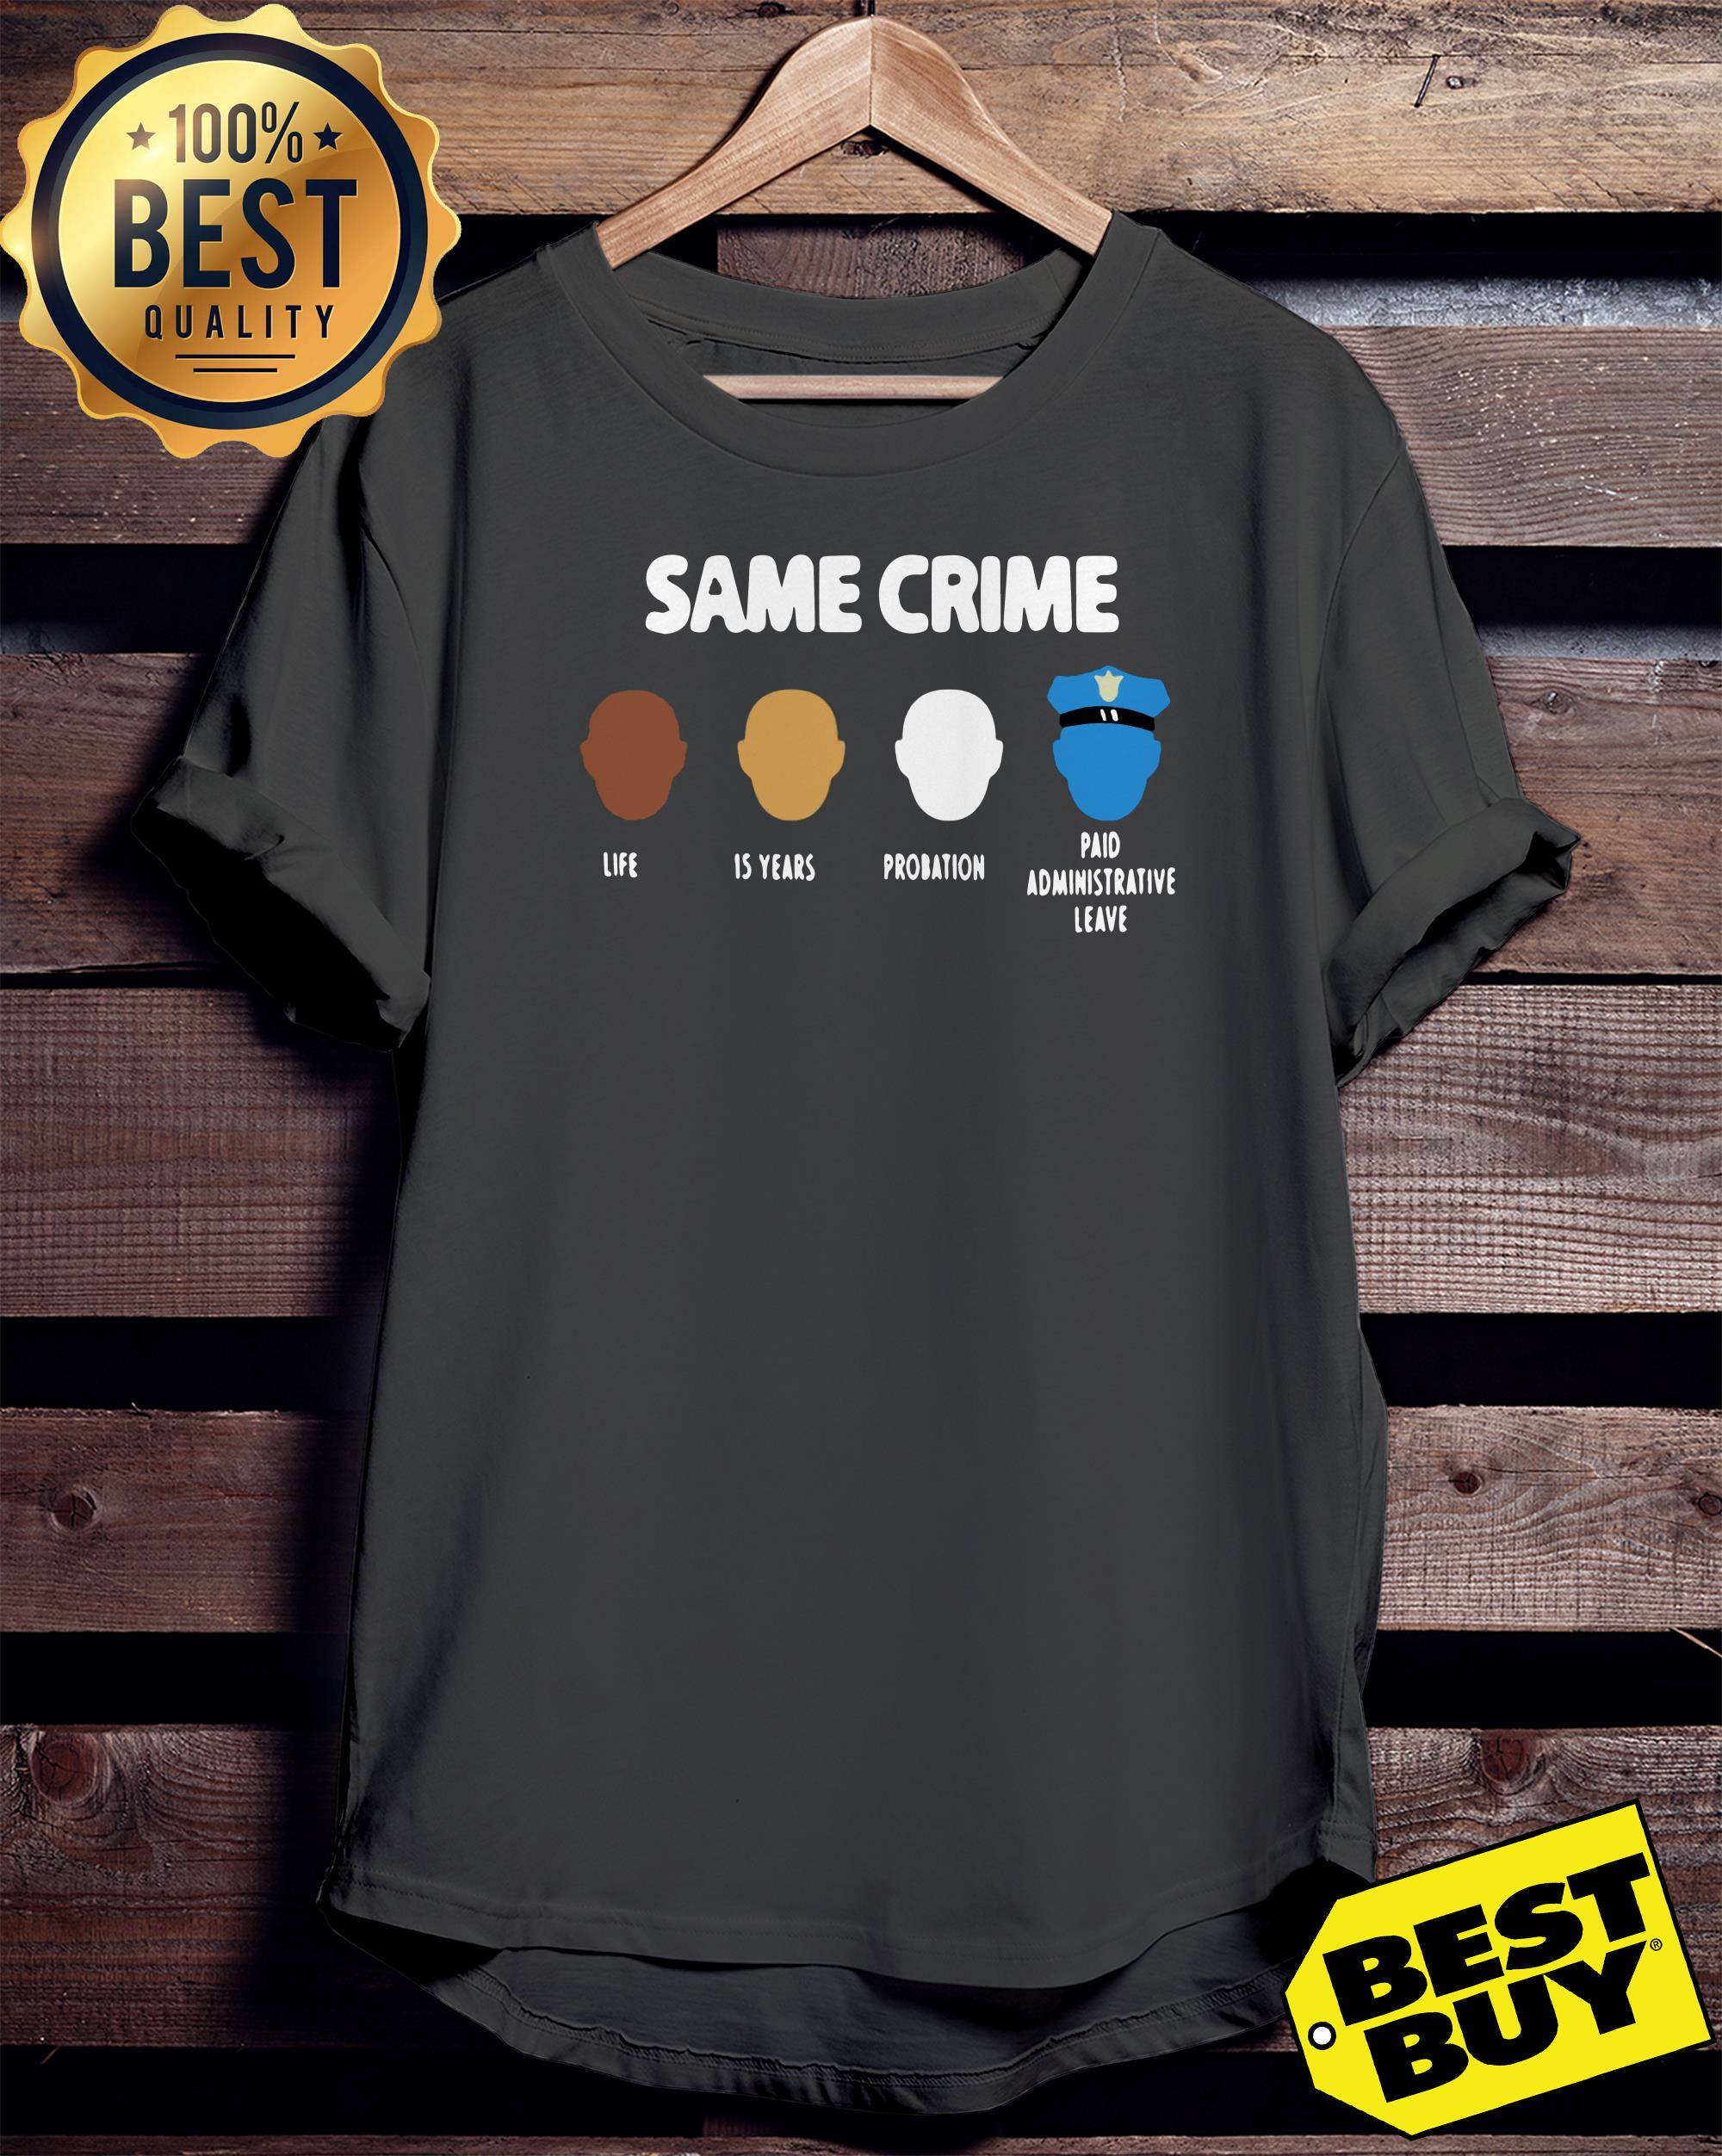 Same Crime Life 15 Years Probation paid administrative Leave ladies tee